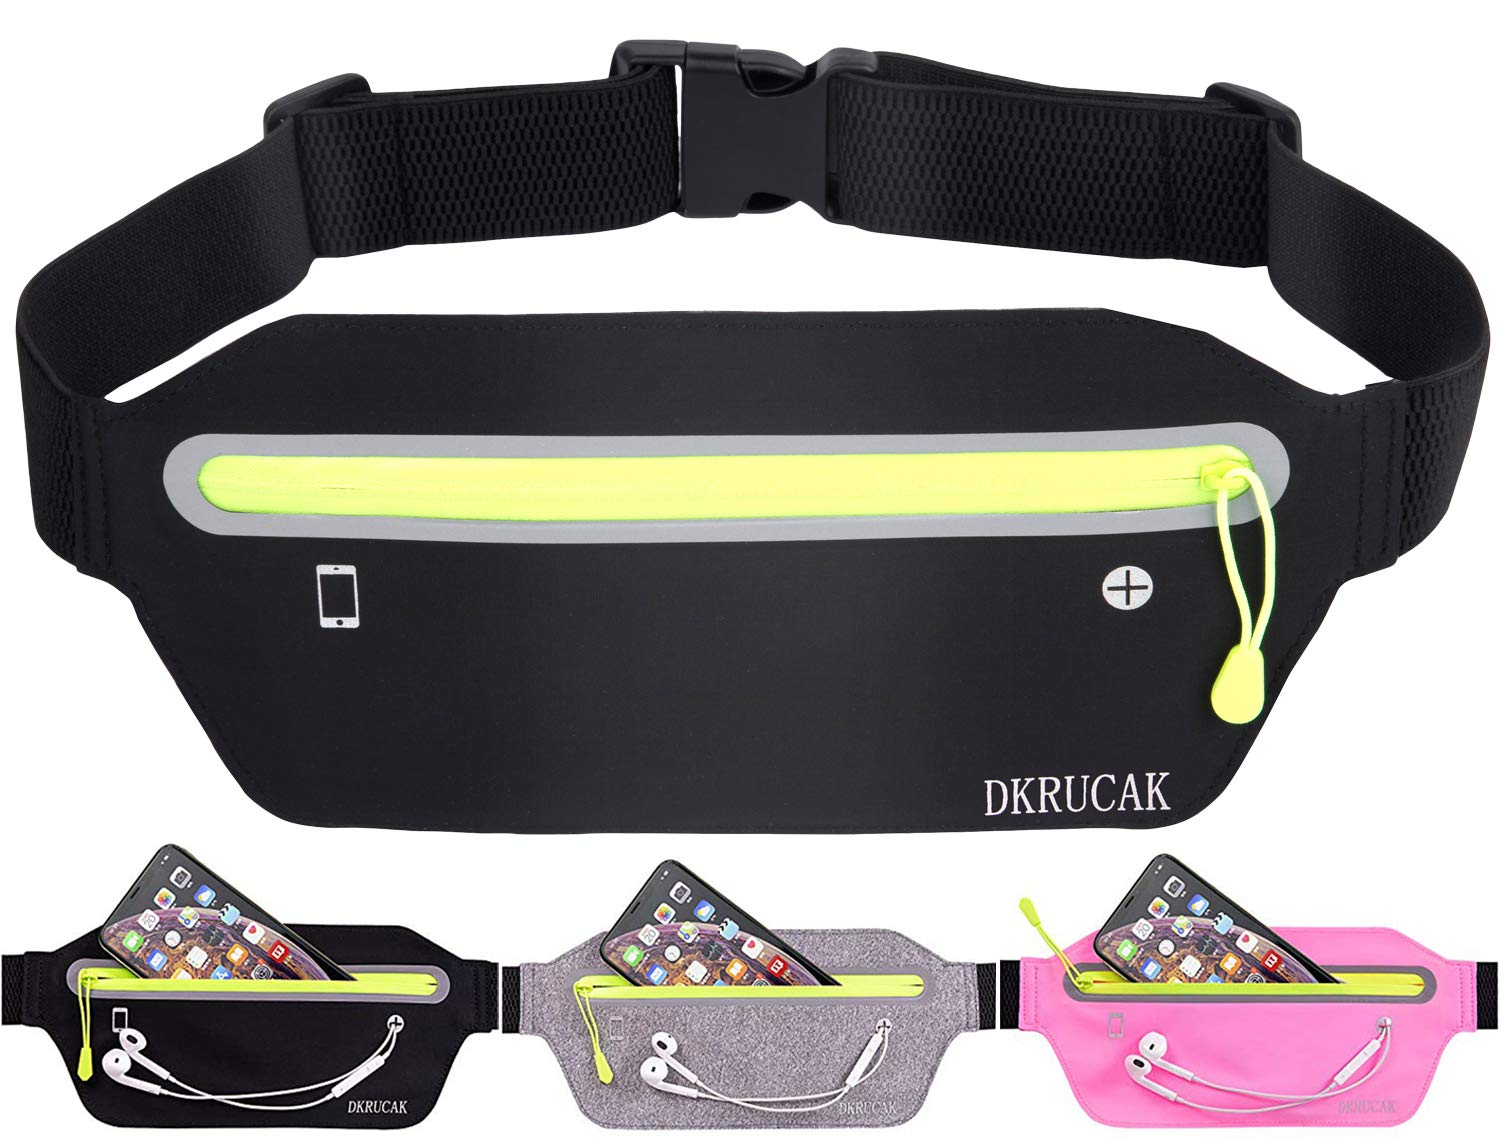 DKRUCAK Slim Running Belt Ultra Light Waist Pouch Fitness Workout Belt Sports Waist Pack Exercise Waist Bag for Women Men Fitness Exercise Marathon Sport Packs